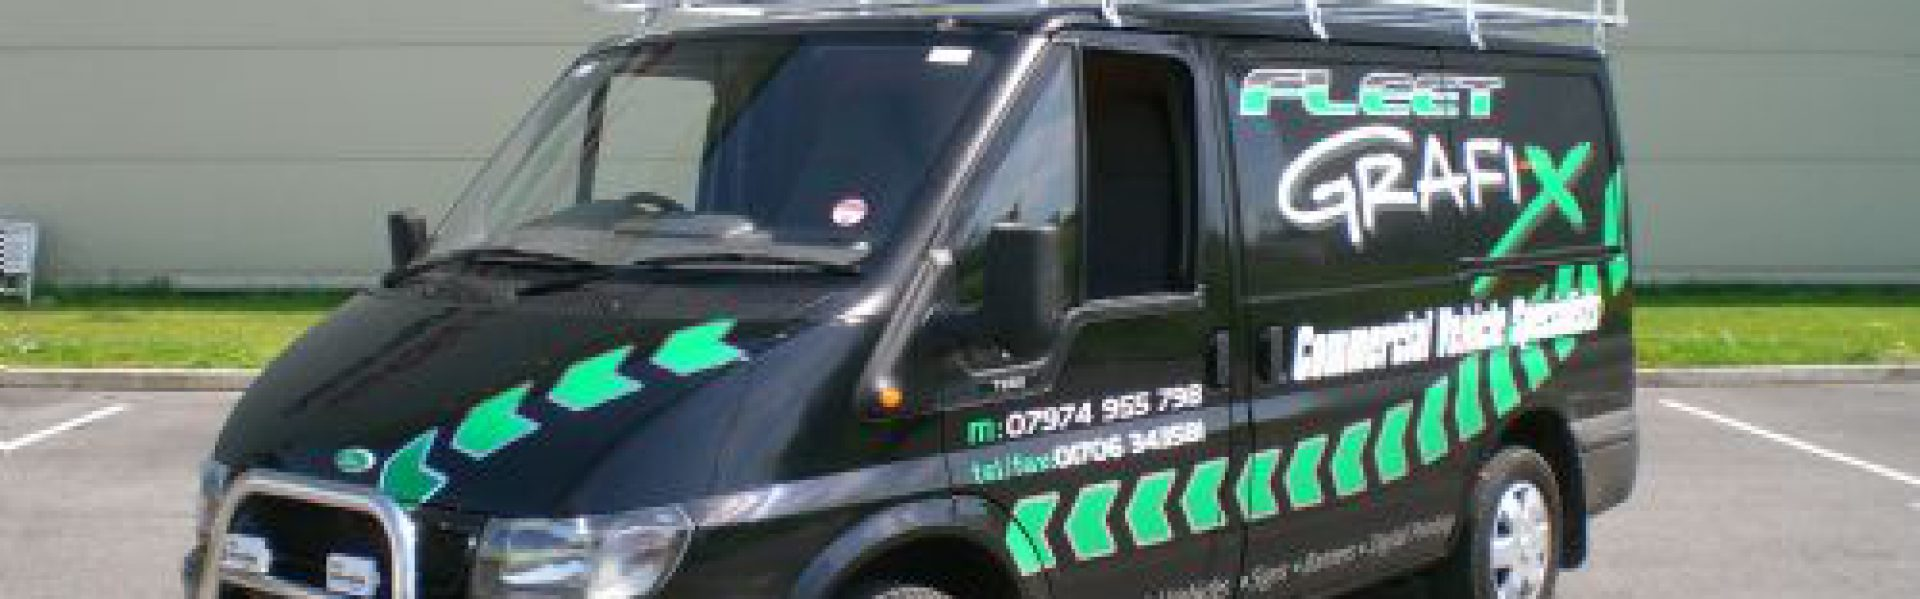 Fleet Grafix Ltd